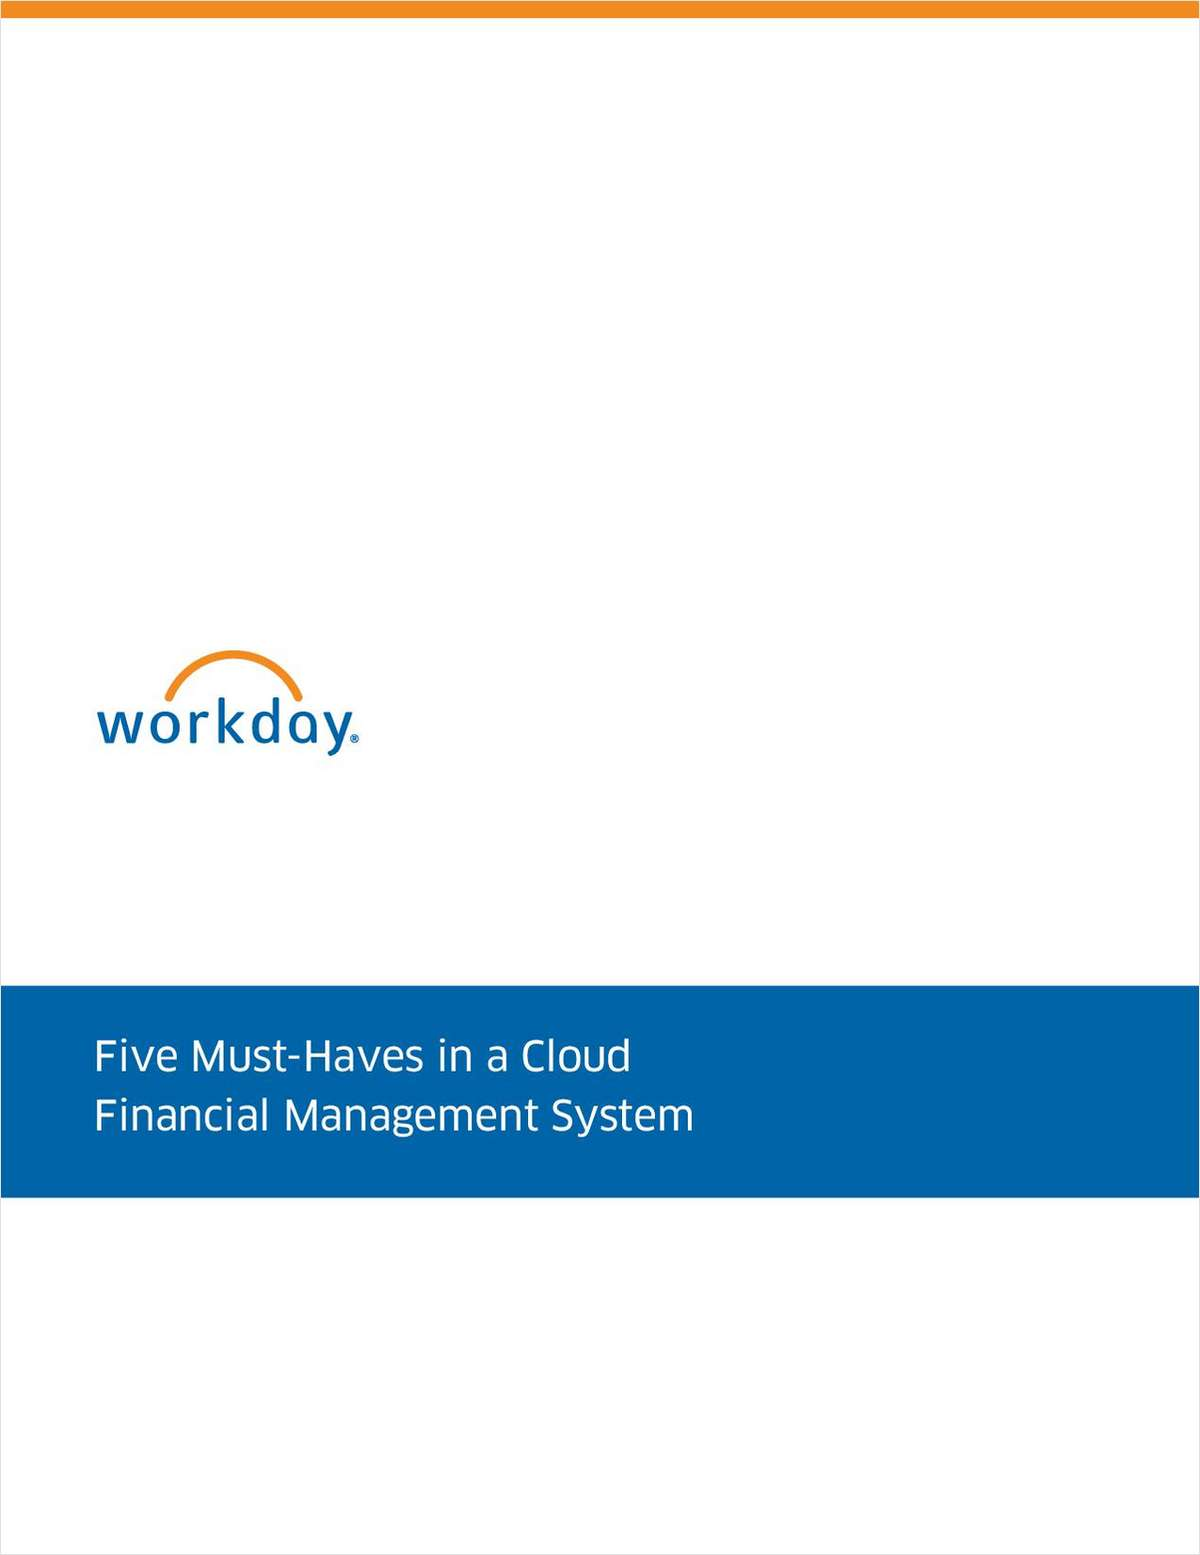 Five Must-Haves in a Cloud Financial Management System